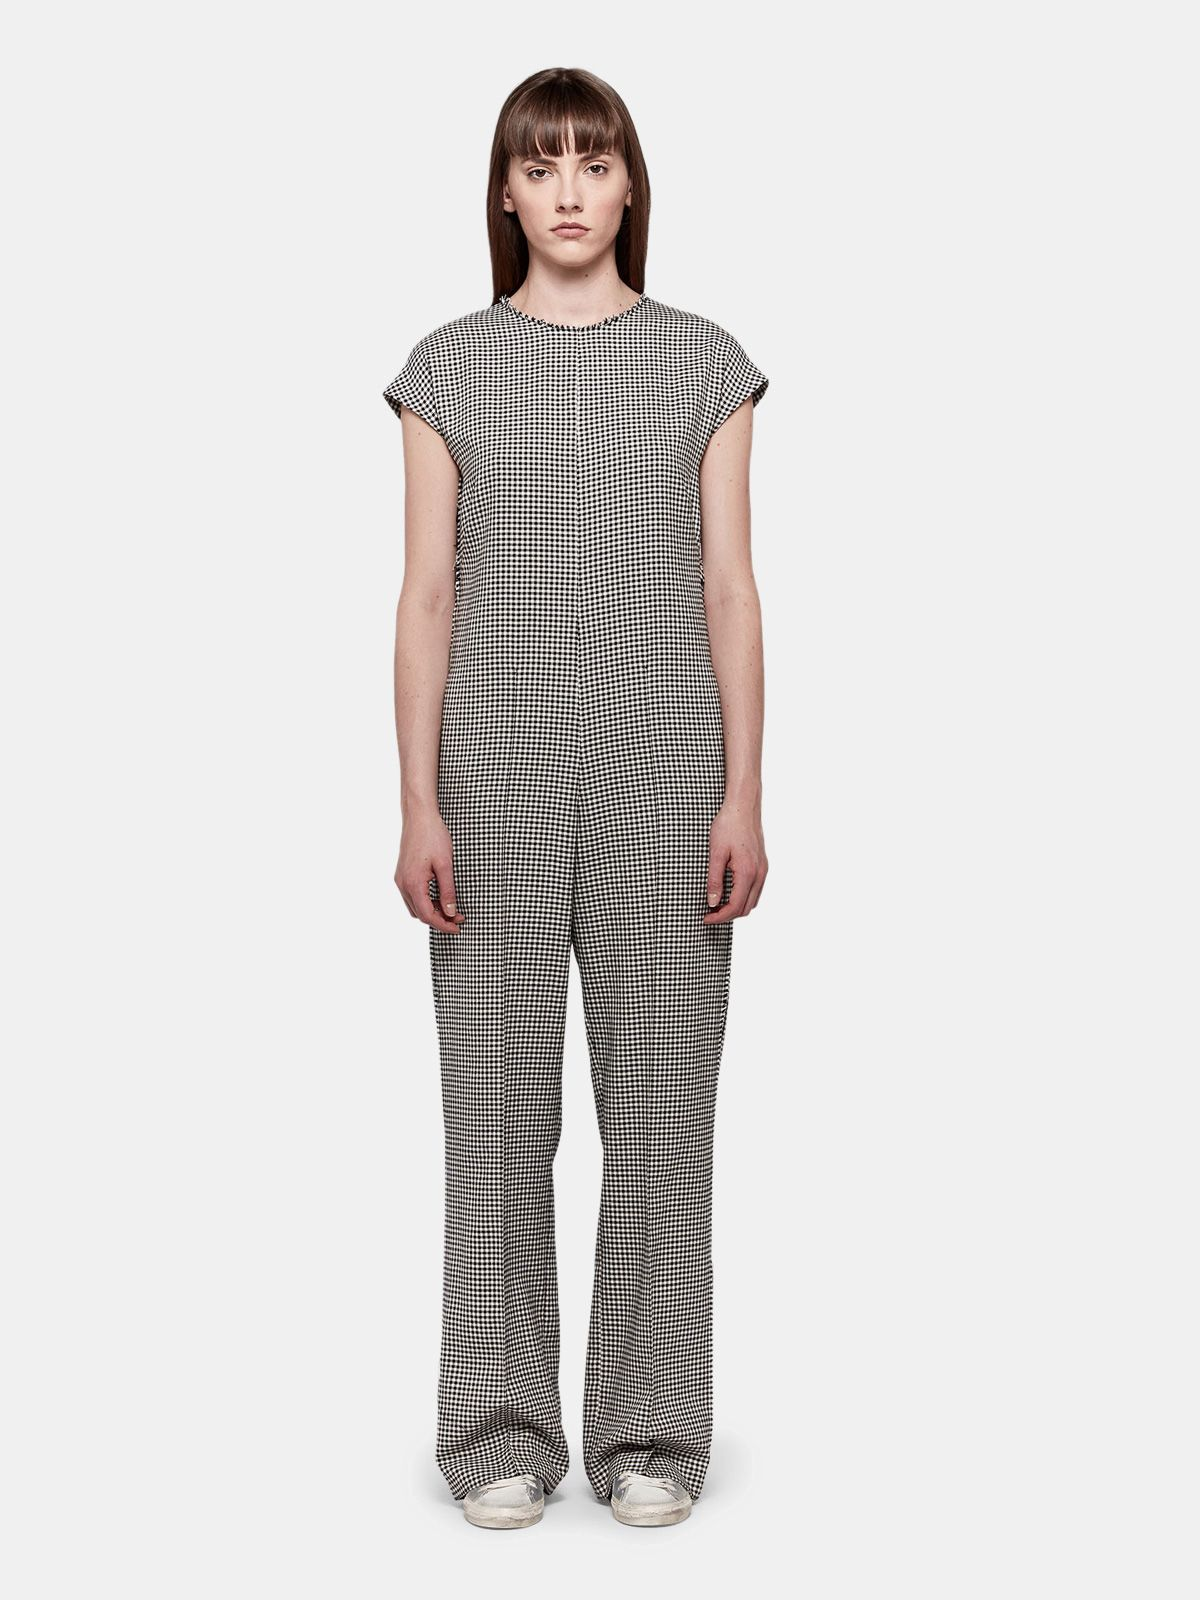 Golden Goose - Narumi jumpsuit in cotton and wool with checked pattern in